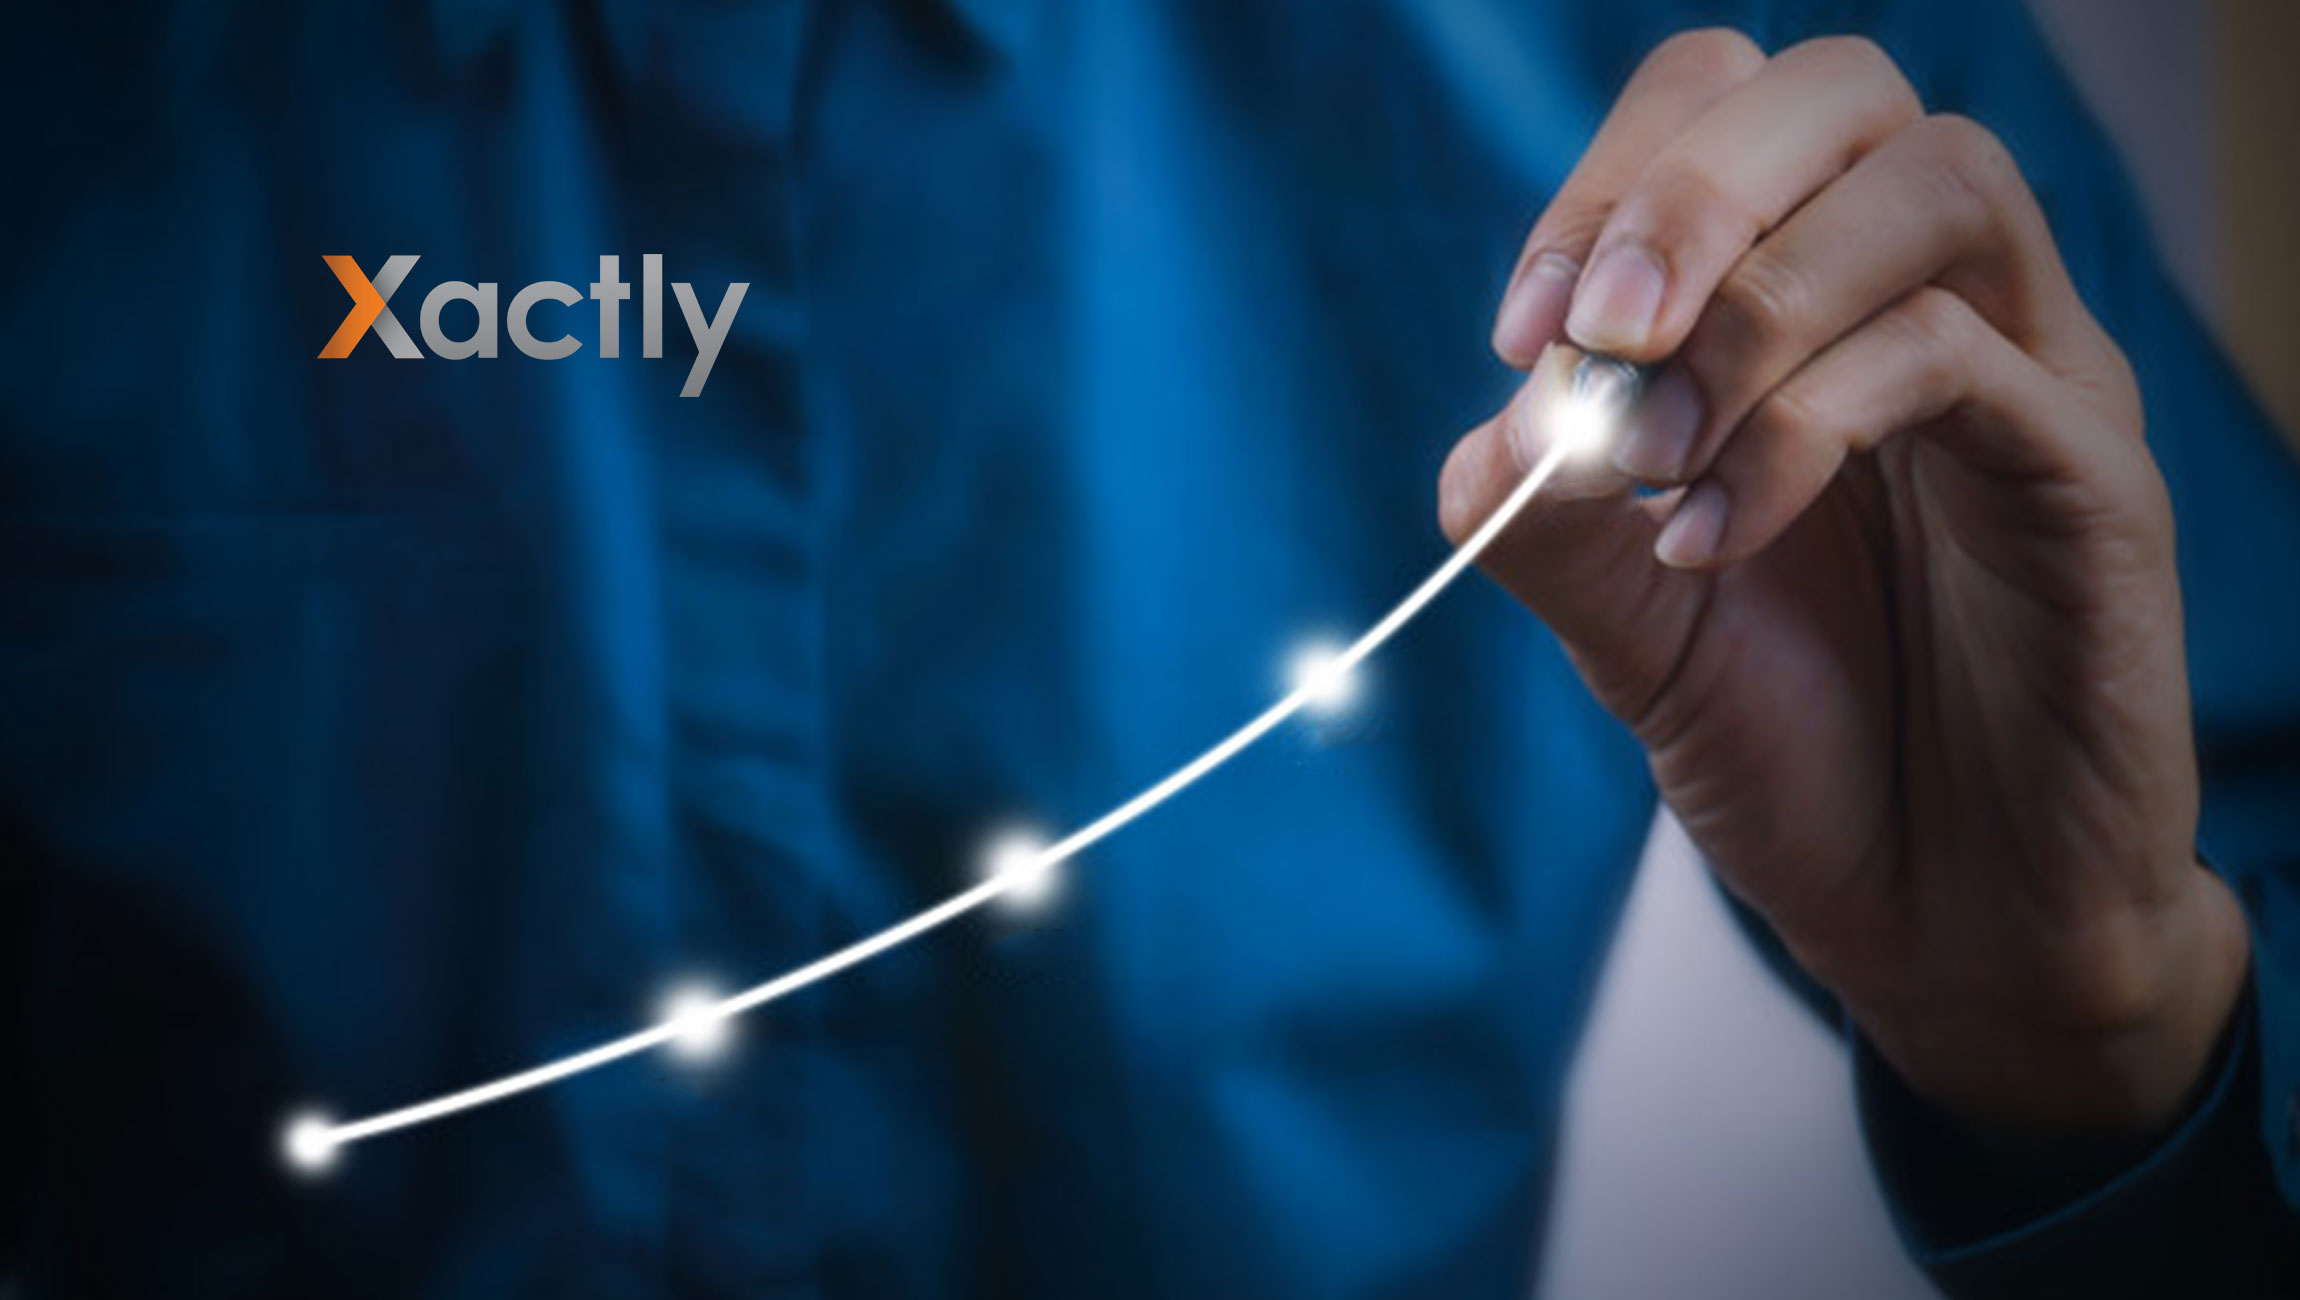 Xactly Partners with Provarity to Deliver Greater Value For Customers